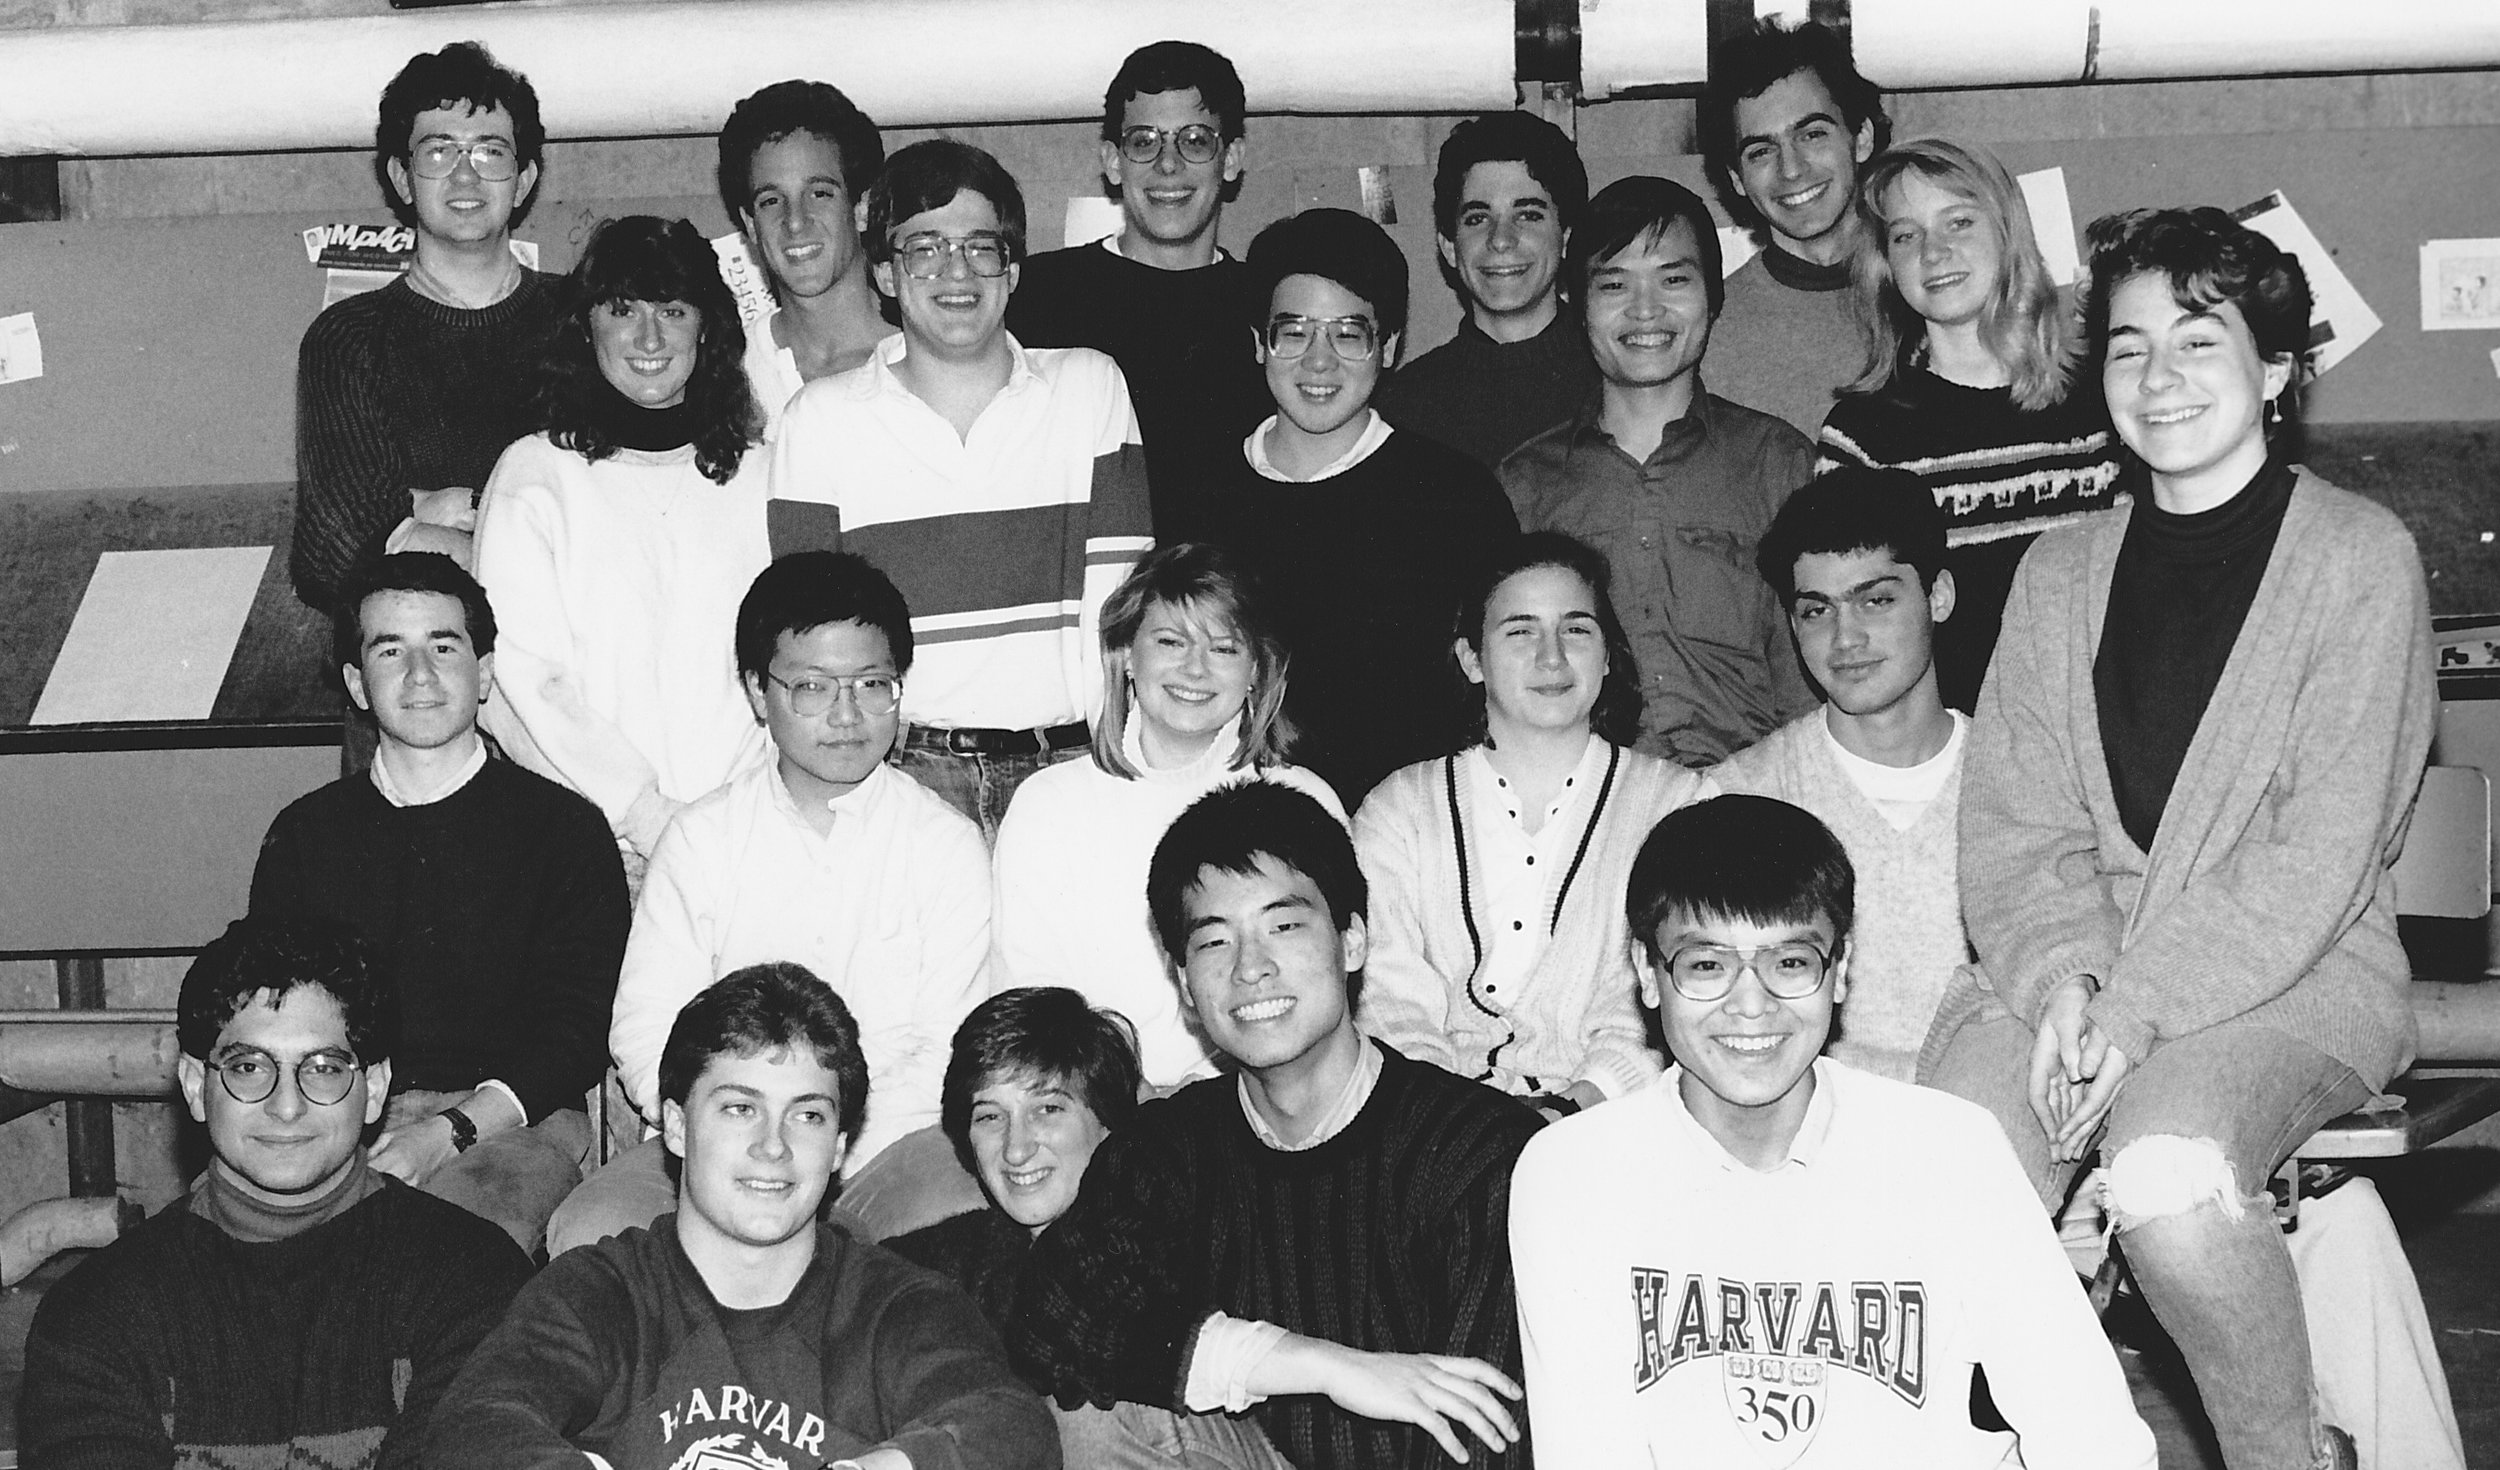 Indy staffers in 1988. That's me in the upper left corner.